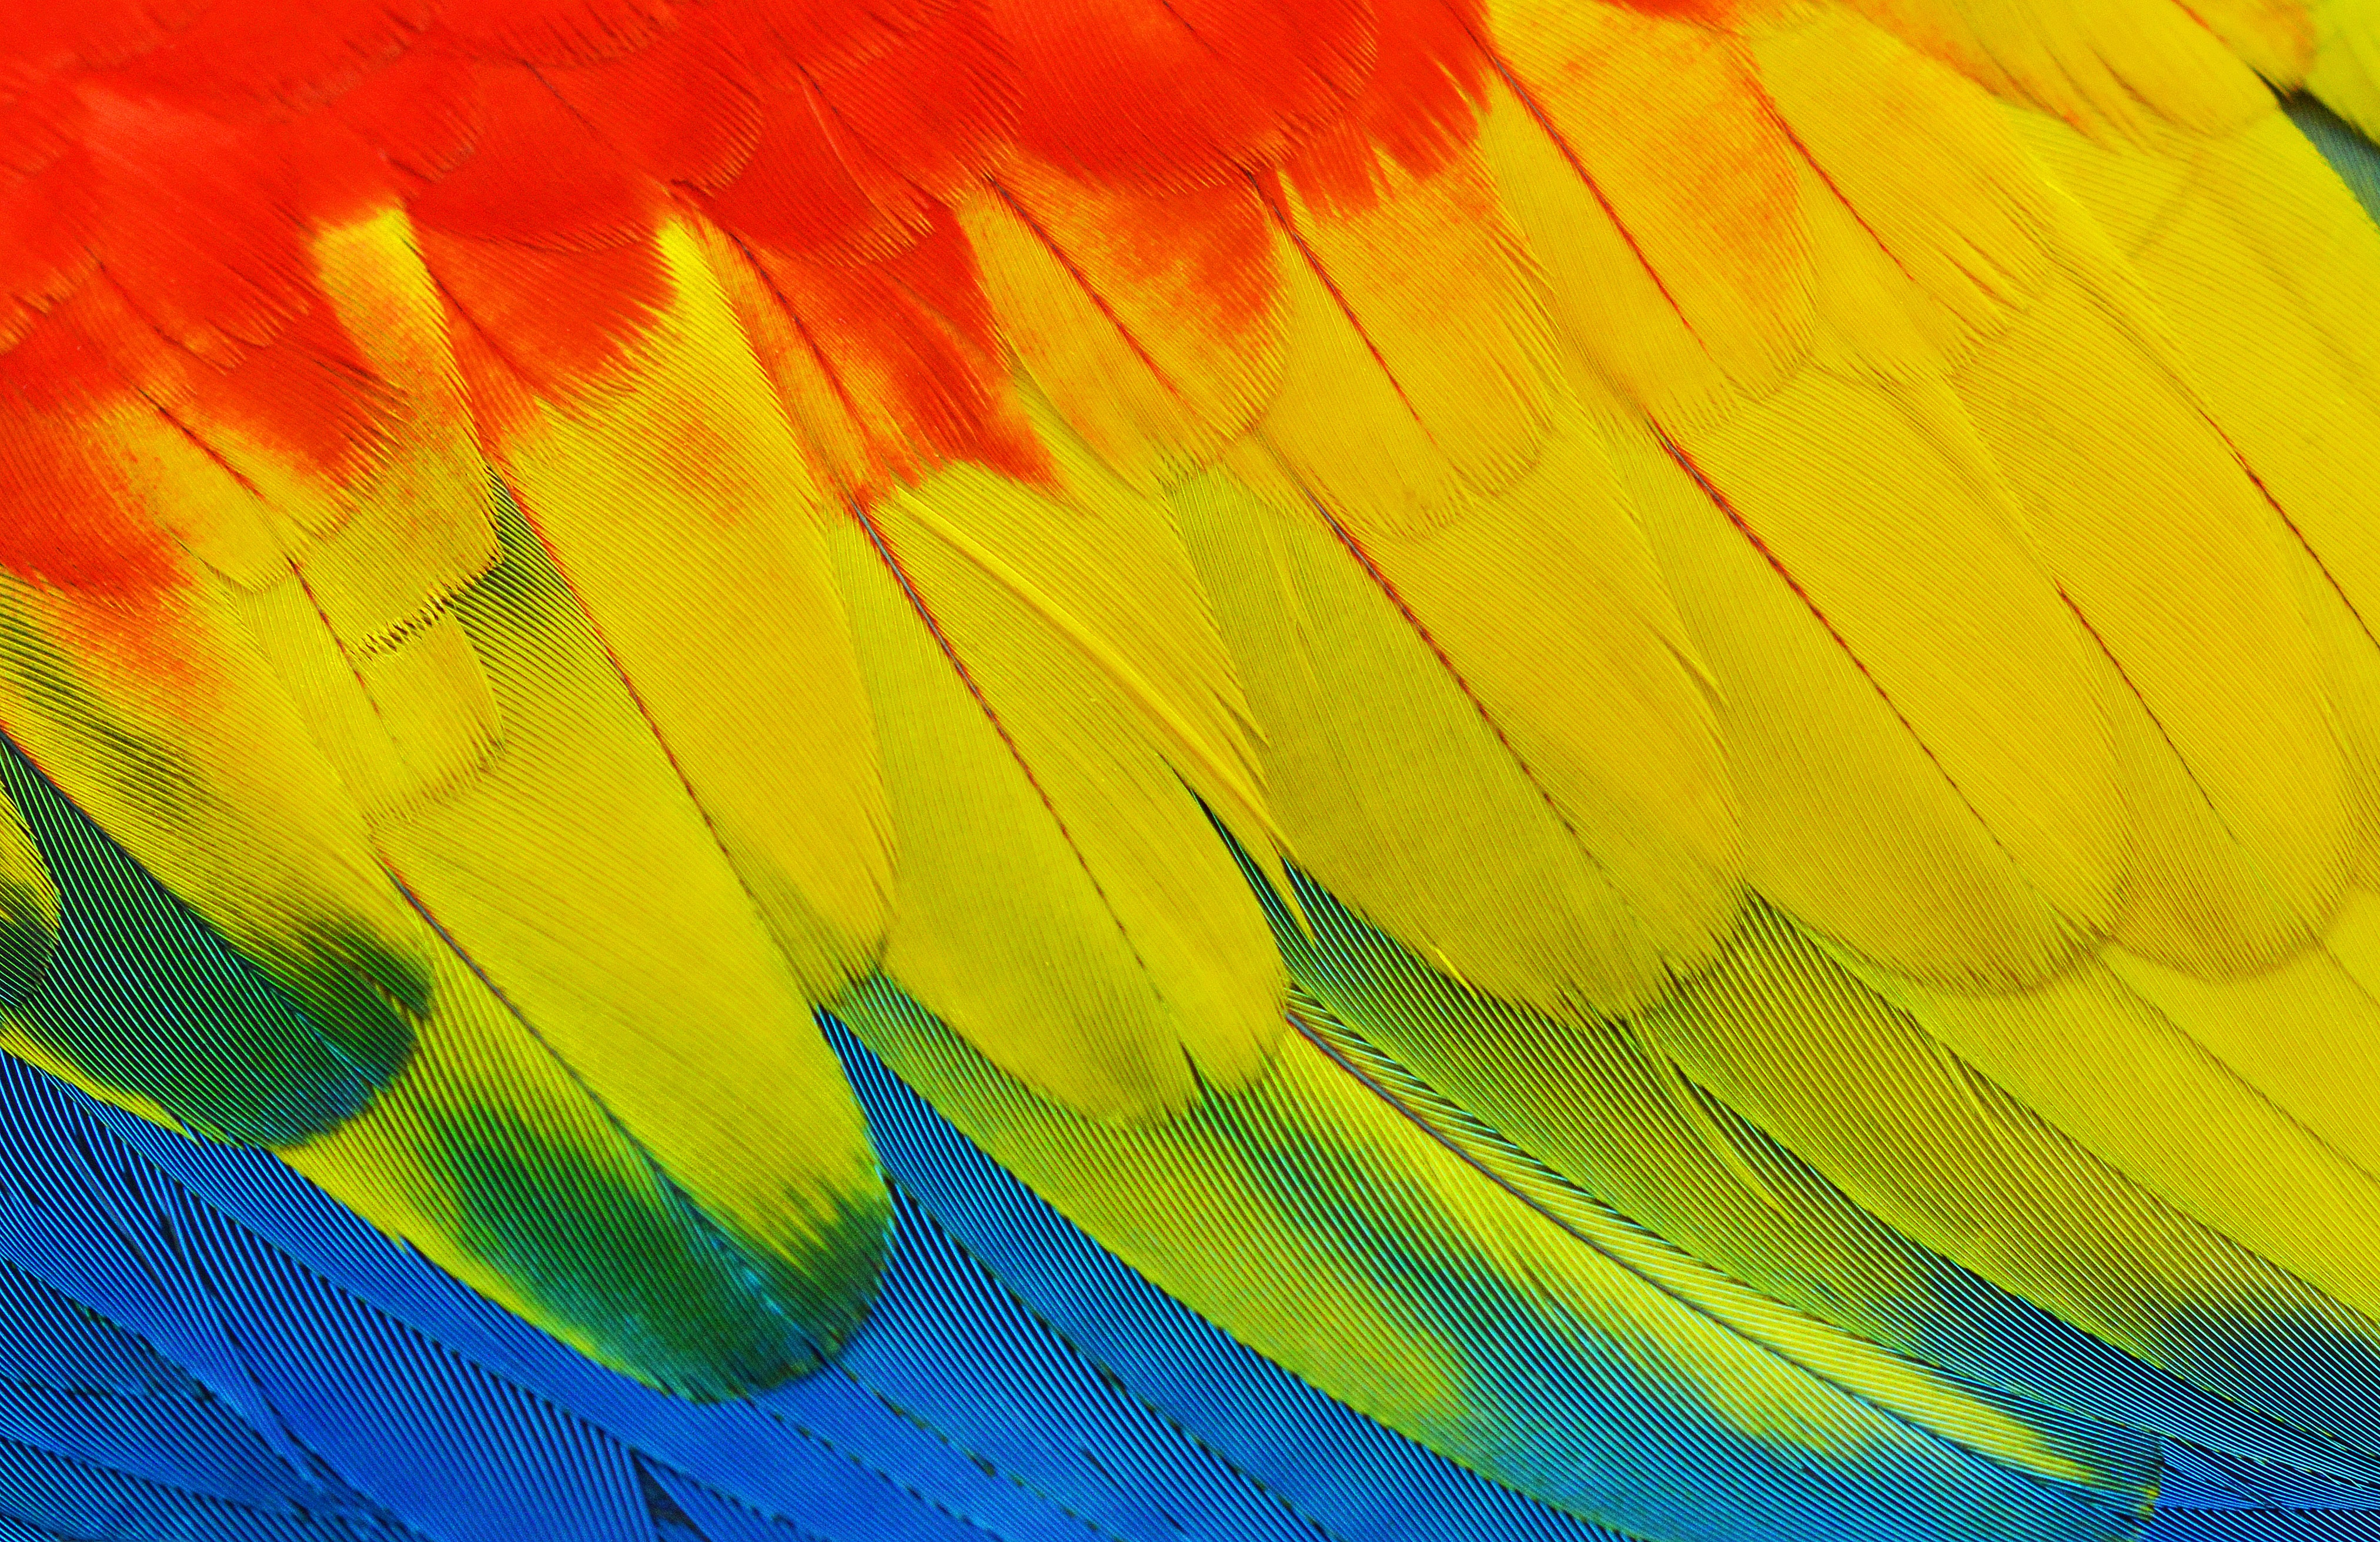 yellow, red, blue, and green feathers